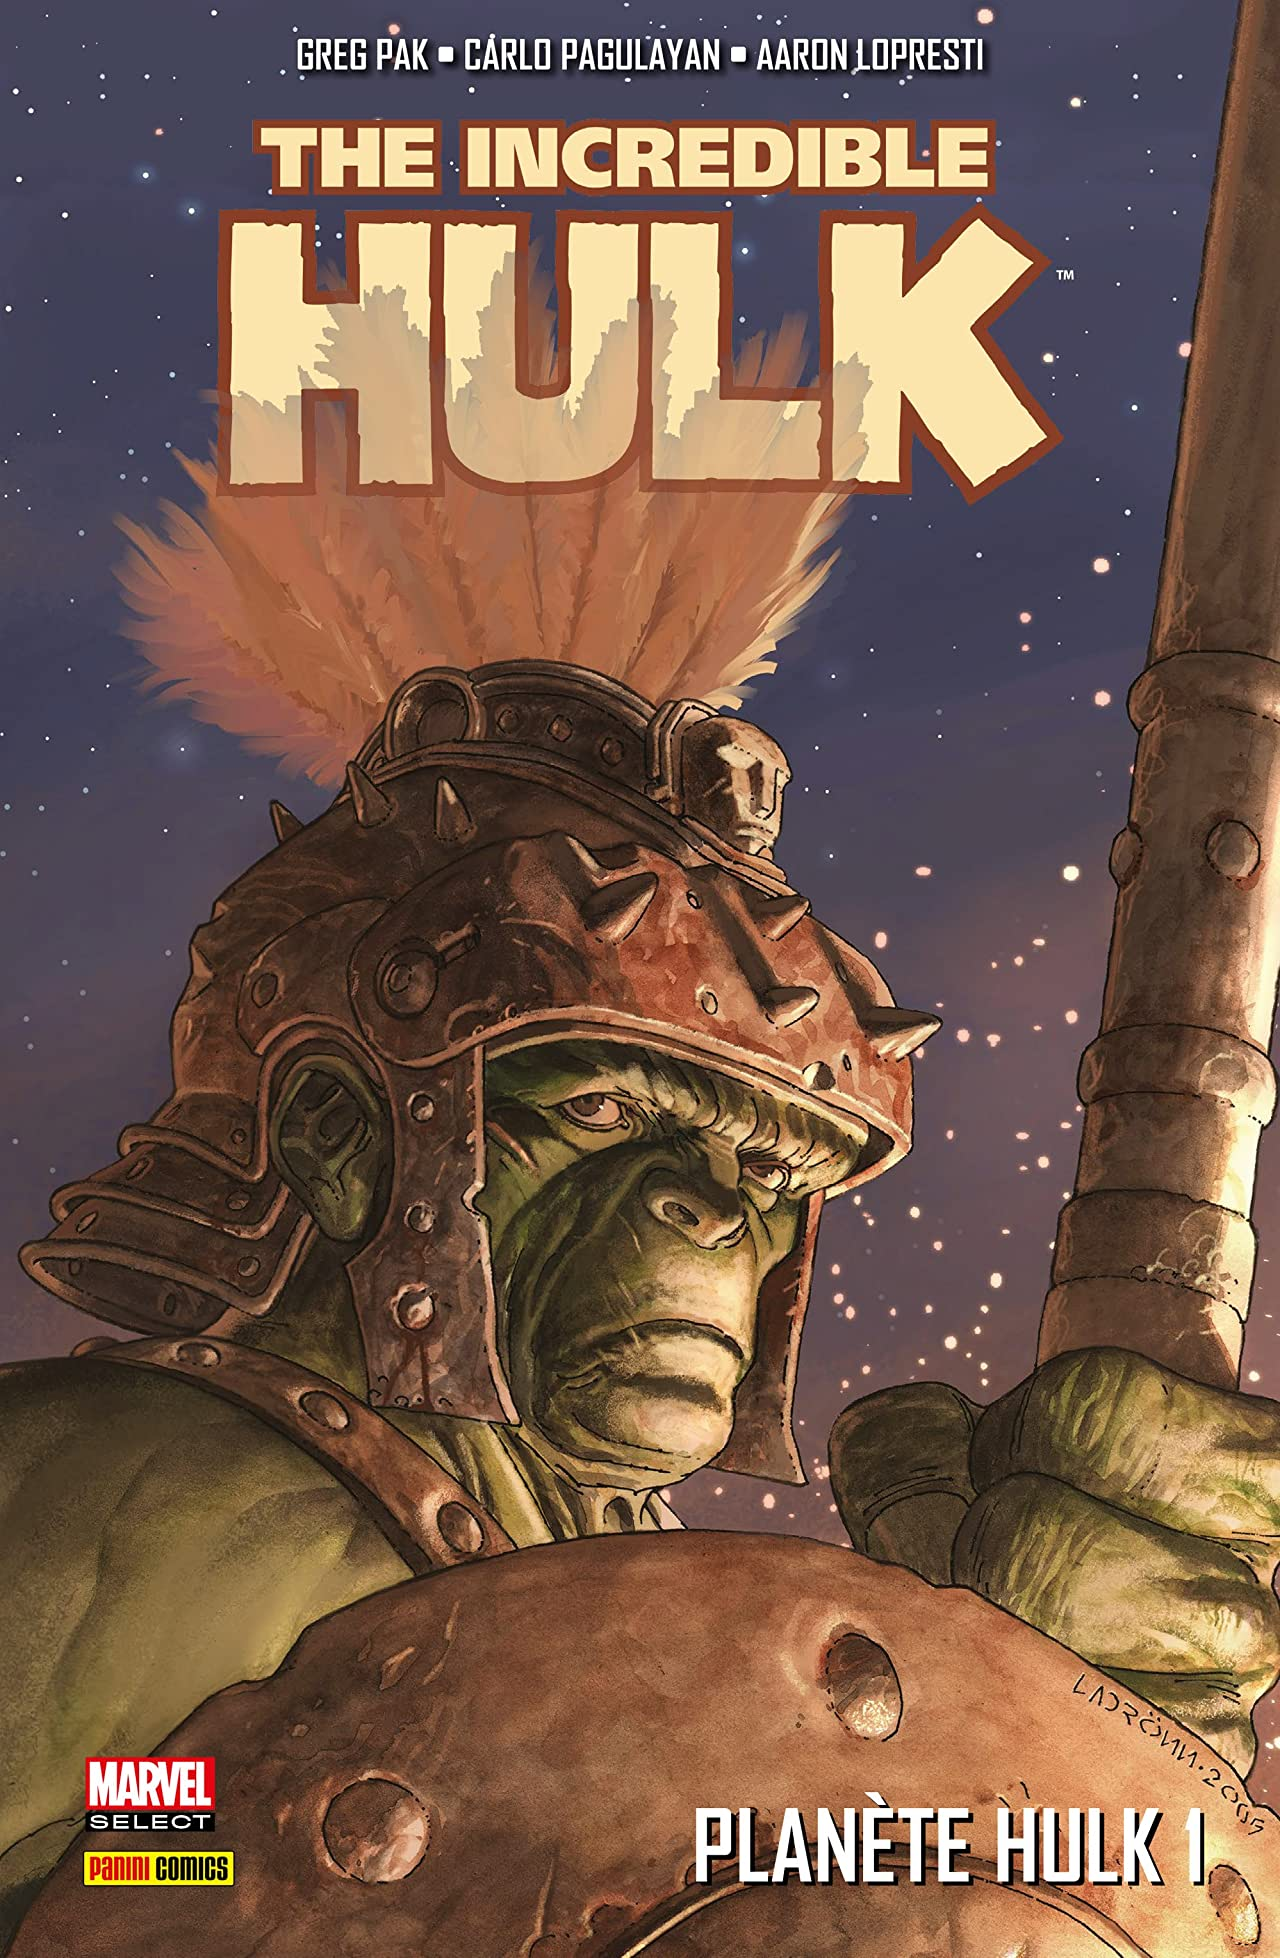 The Incredible Hulk: Planète Hulk Vol. 1